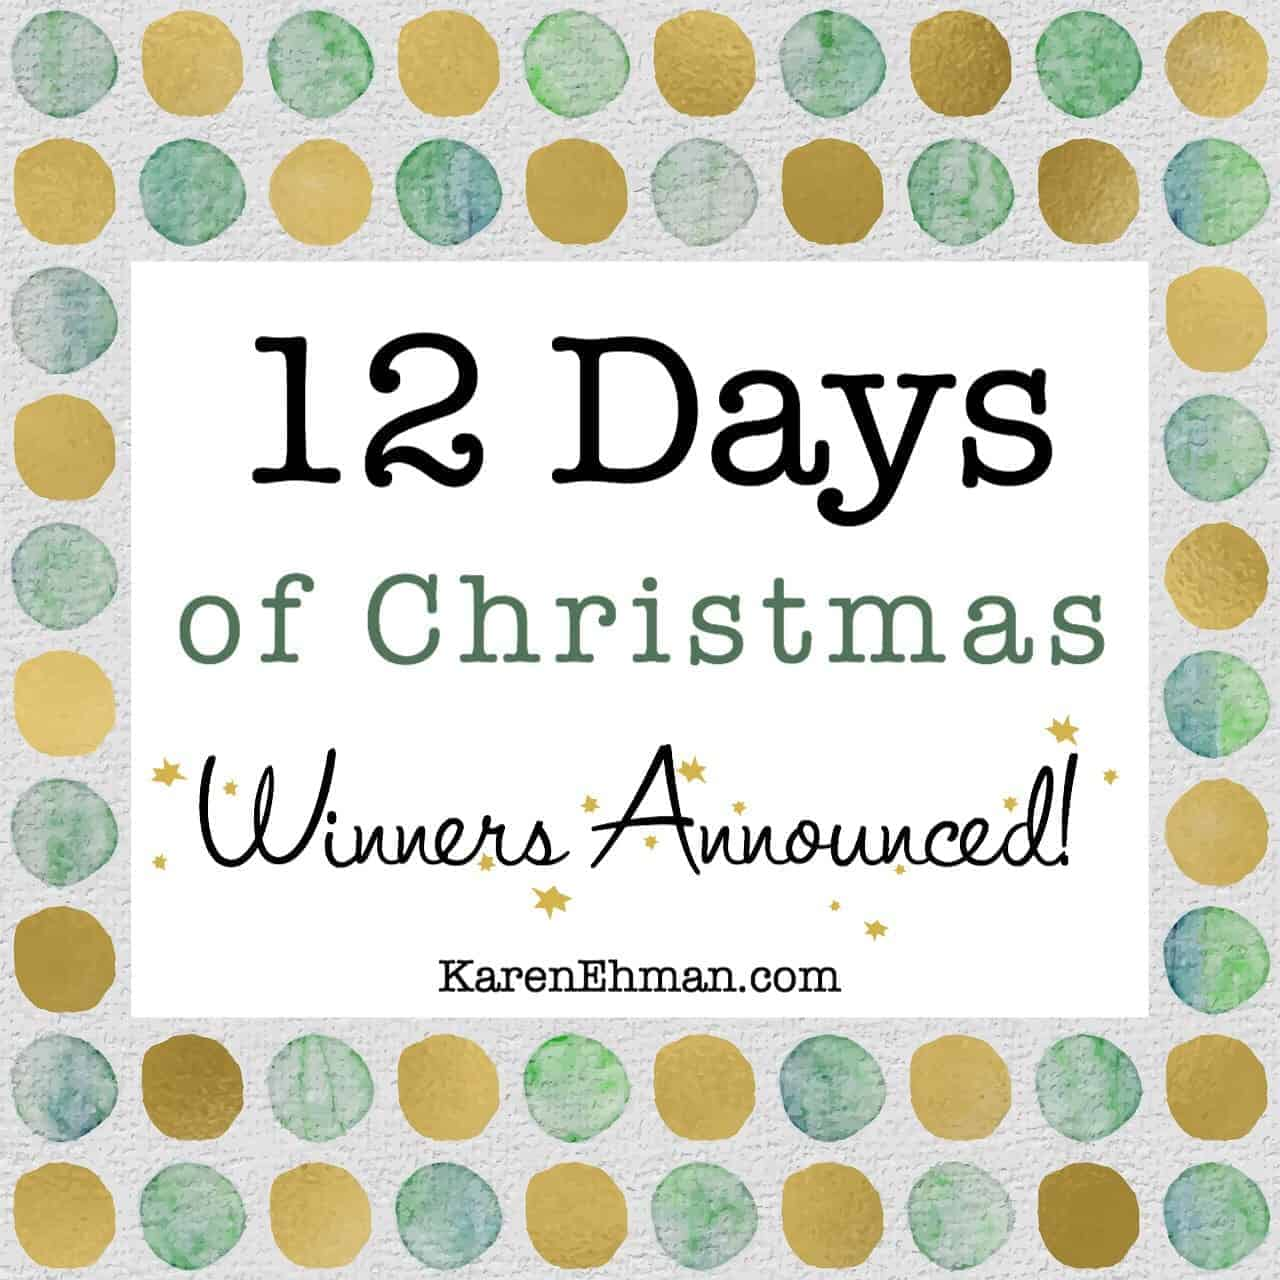 Winners Announced – 12 Days of Christmas Giveaways